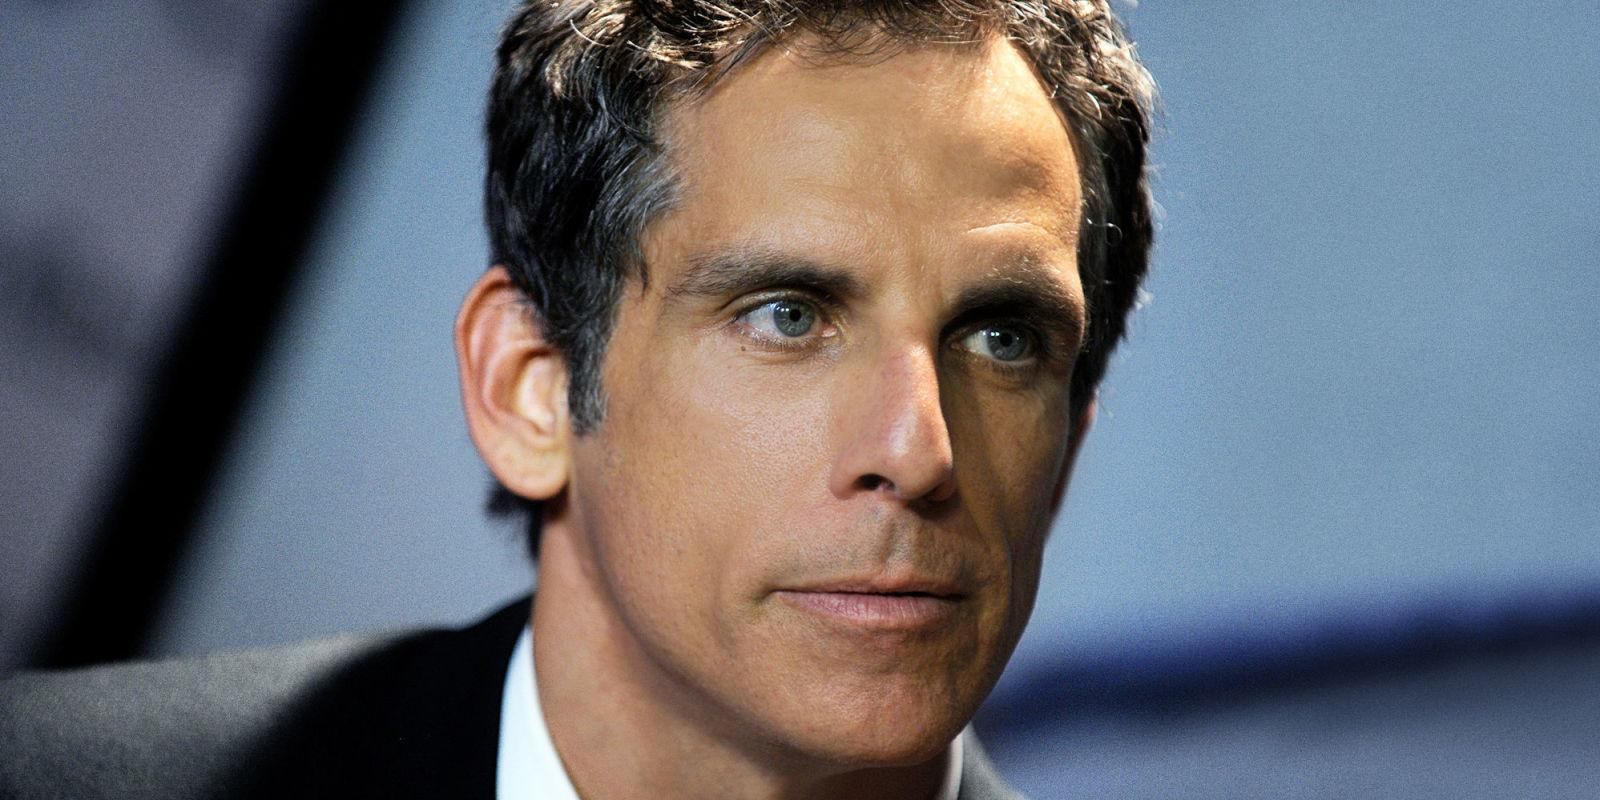 Ben Stiller Opens Up About the Death That Delayed 'Zoolander 2' Nearly 15 Years